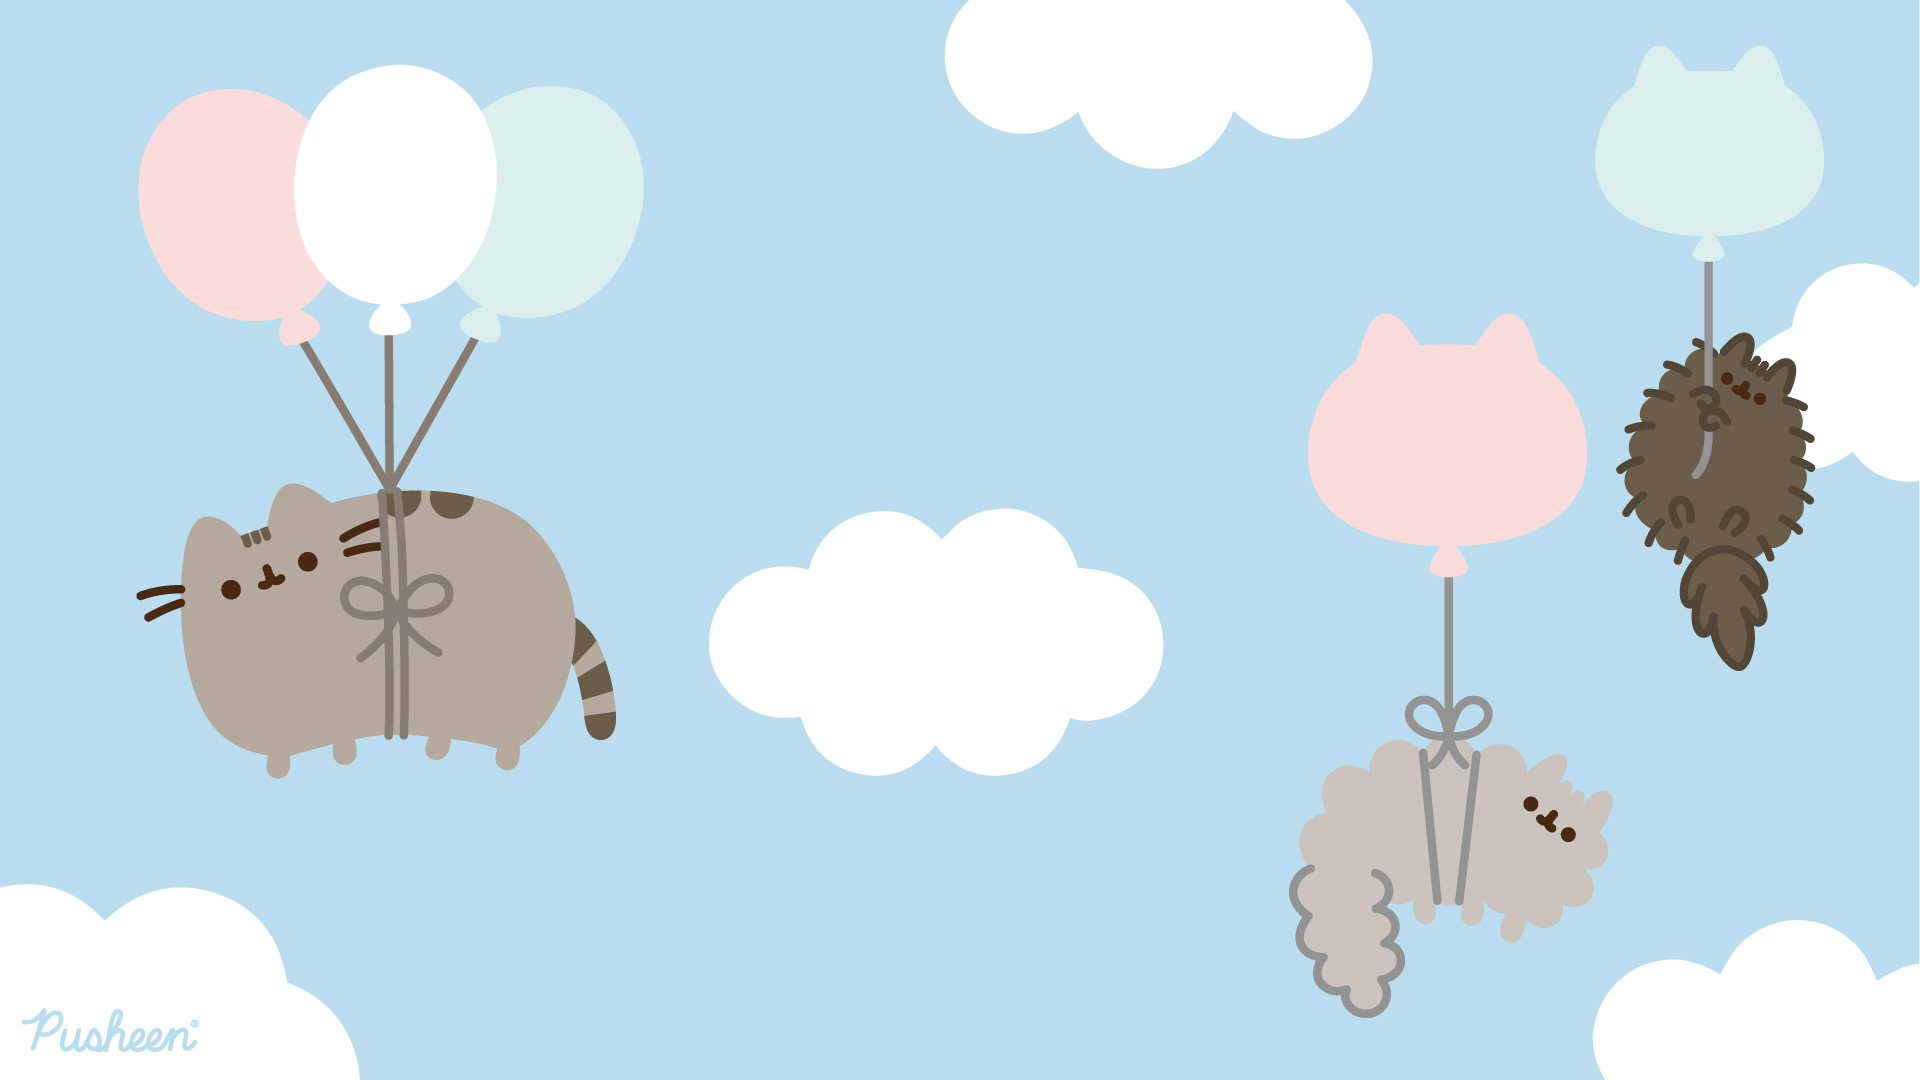 Pusheen_Zoom_Background_clouds_2020